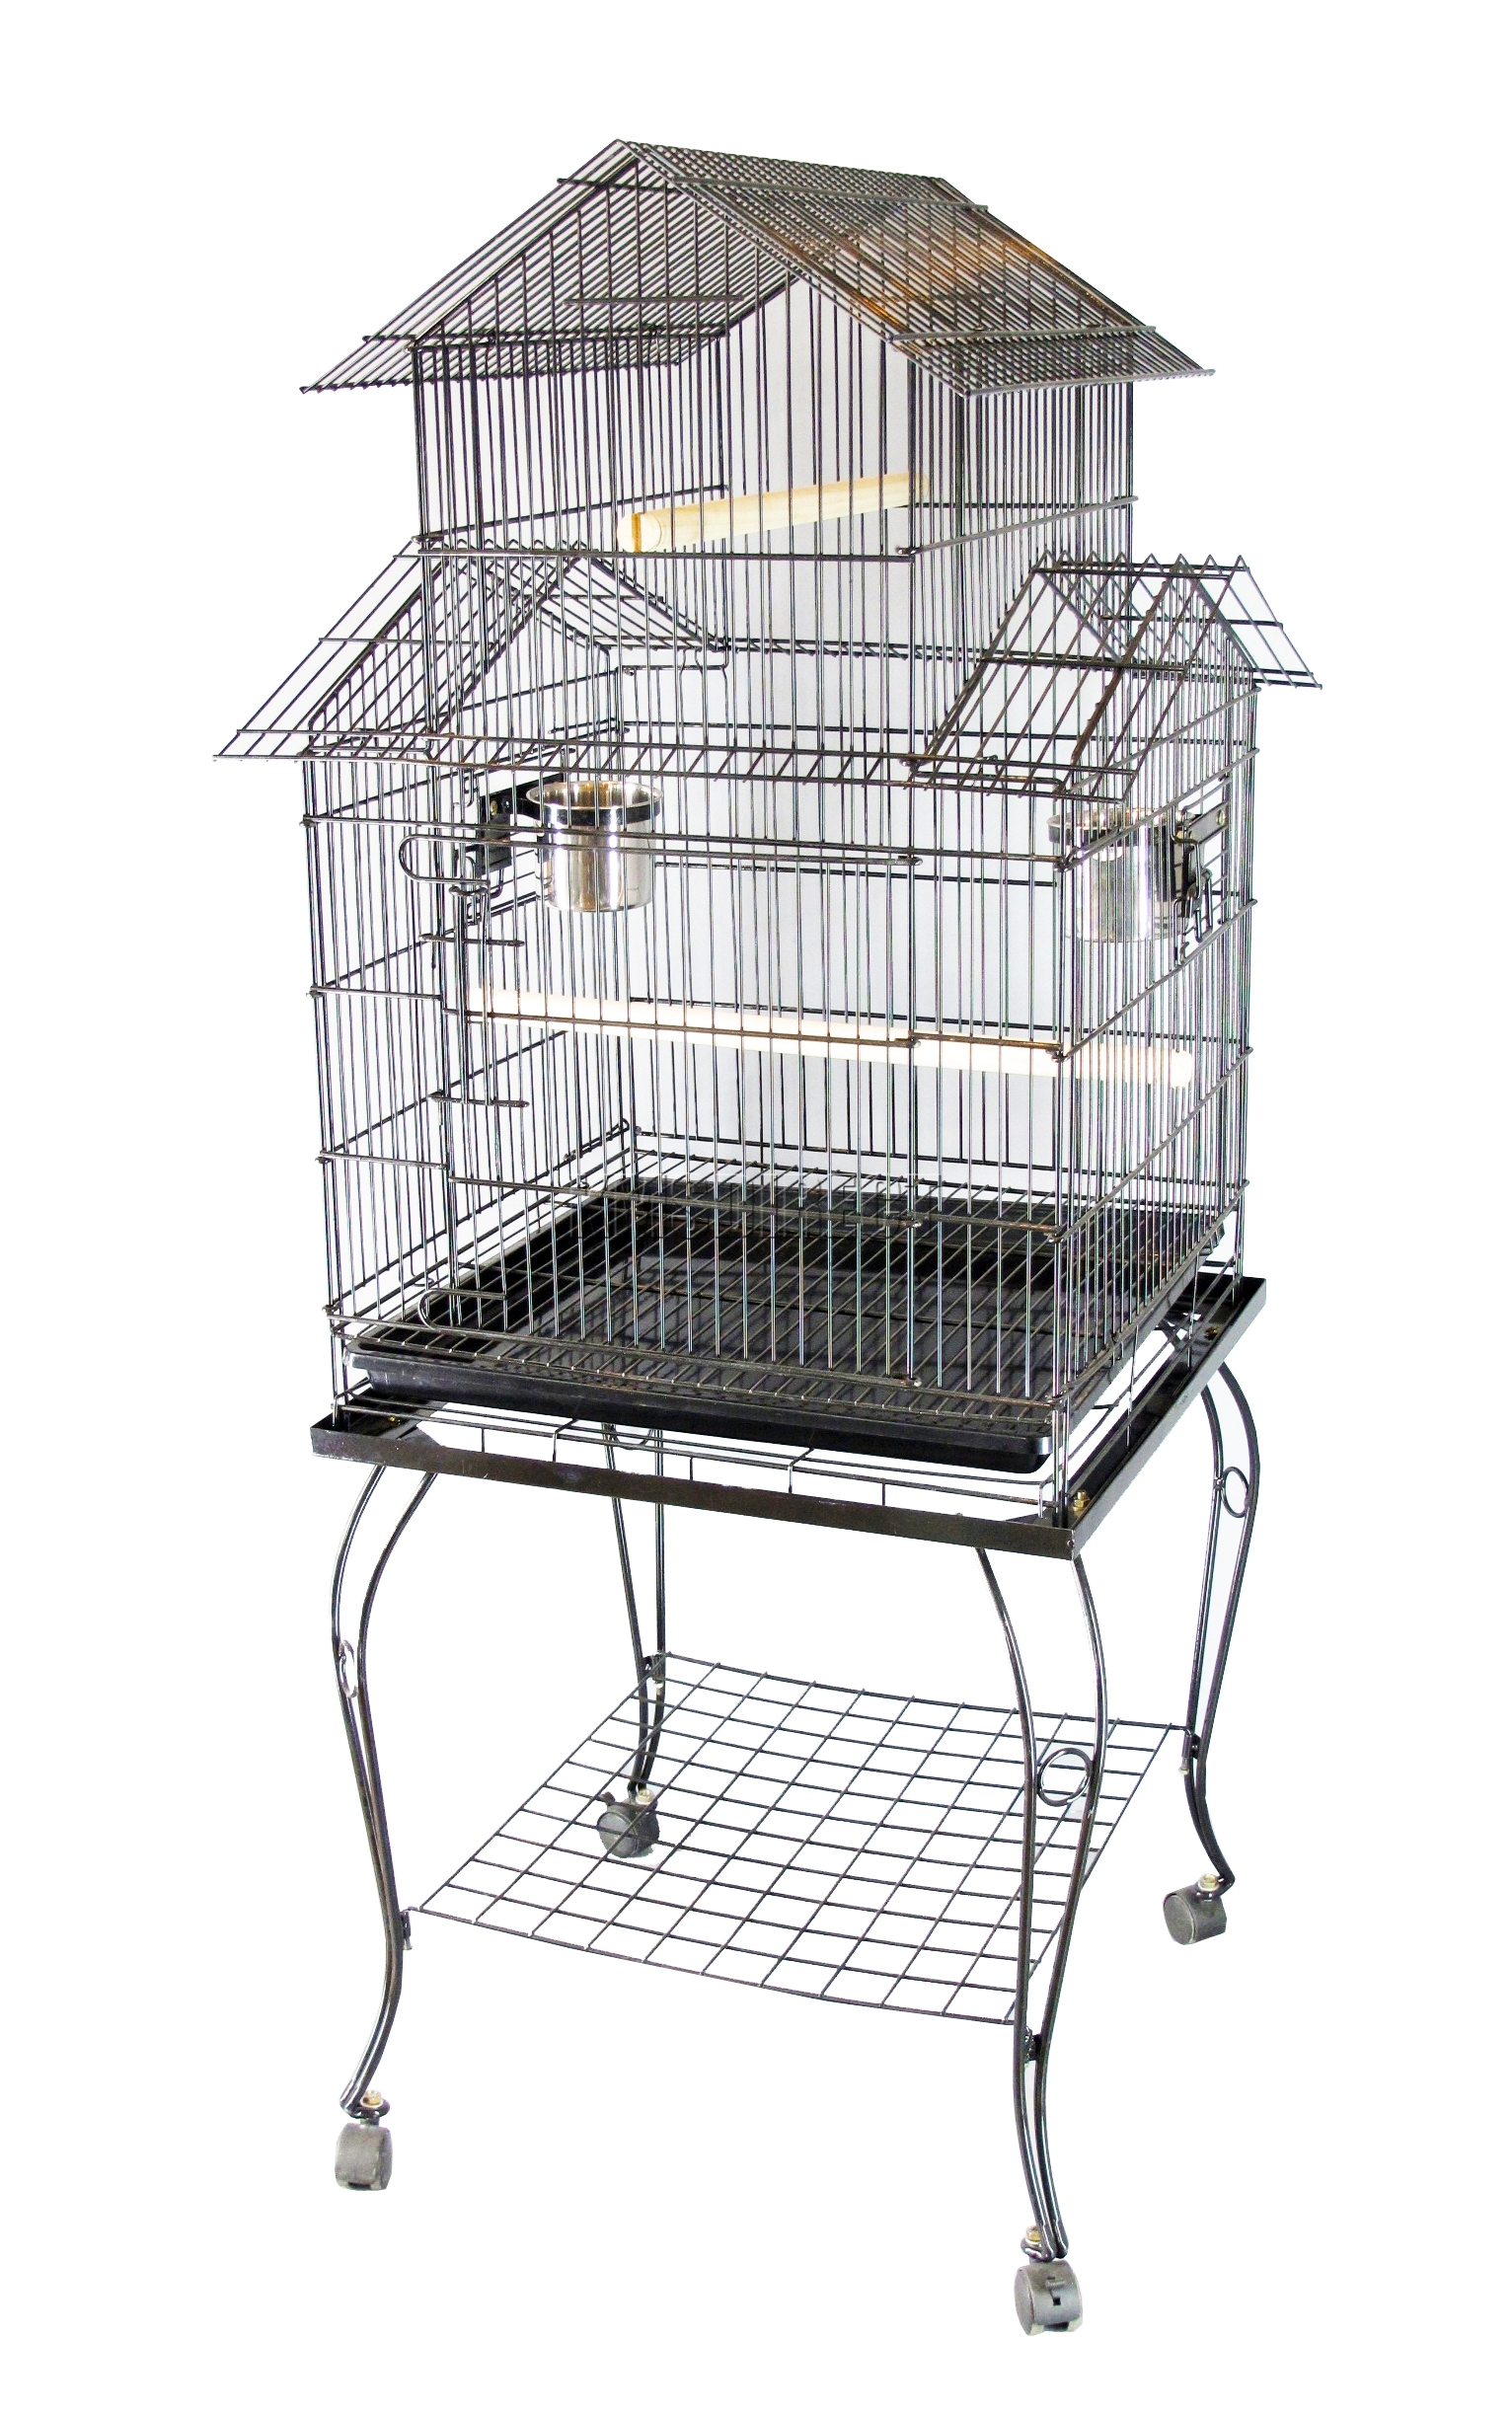 FoxHunter-Large-Metal-Bird-Cage-With-Stand-Aviary-Parrot-Budgie-Canary-Cockatiel